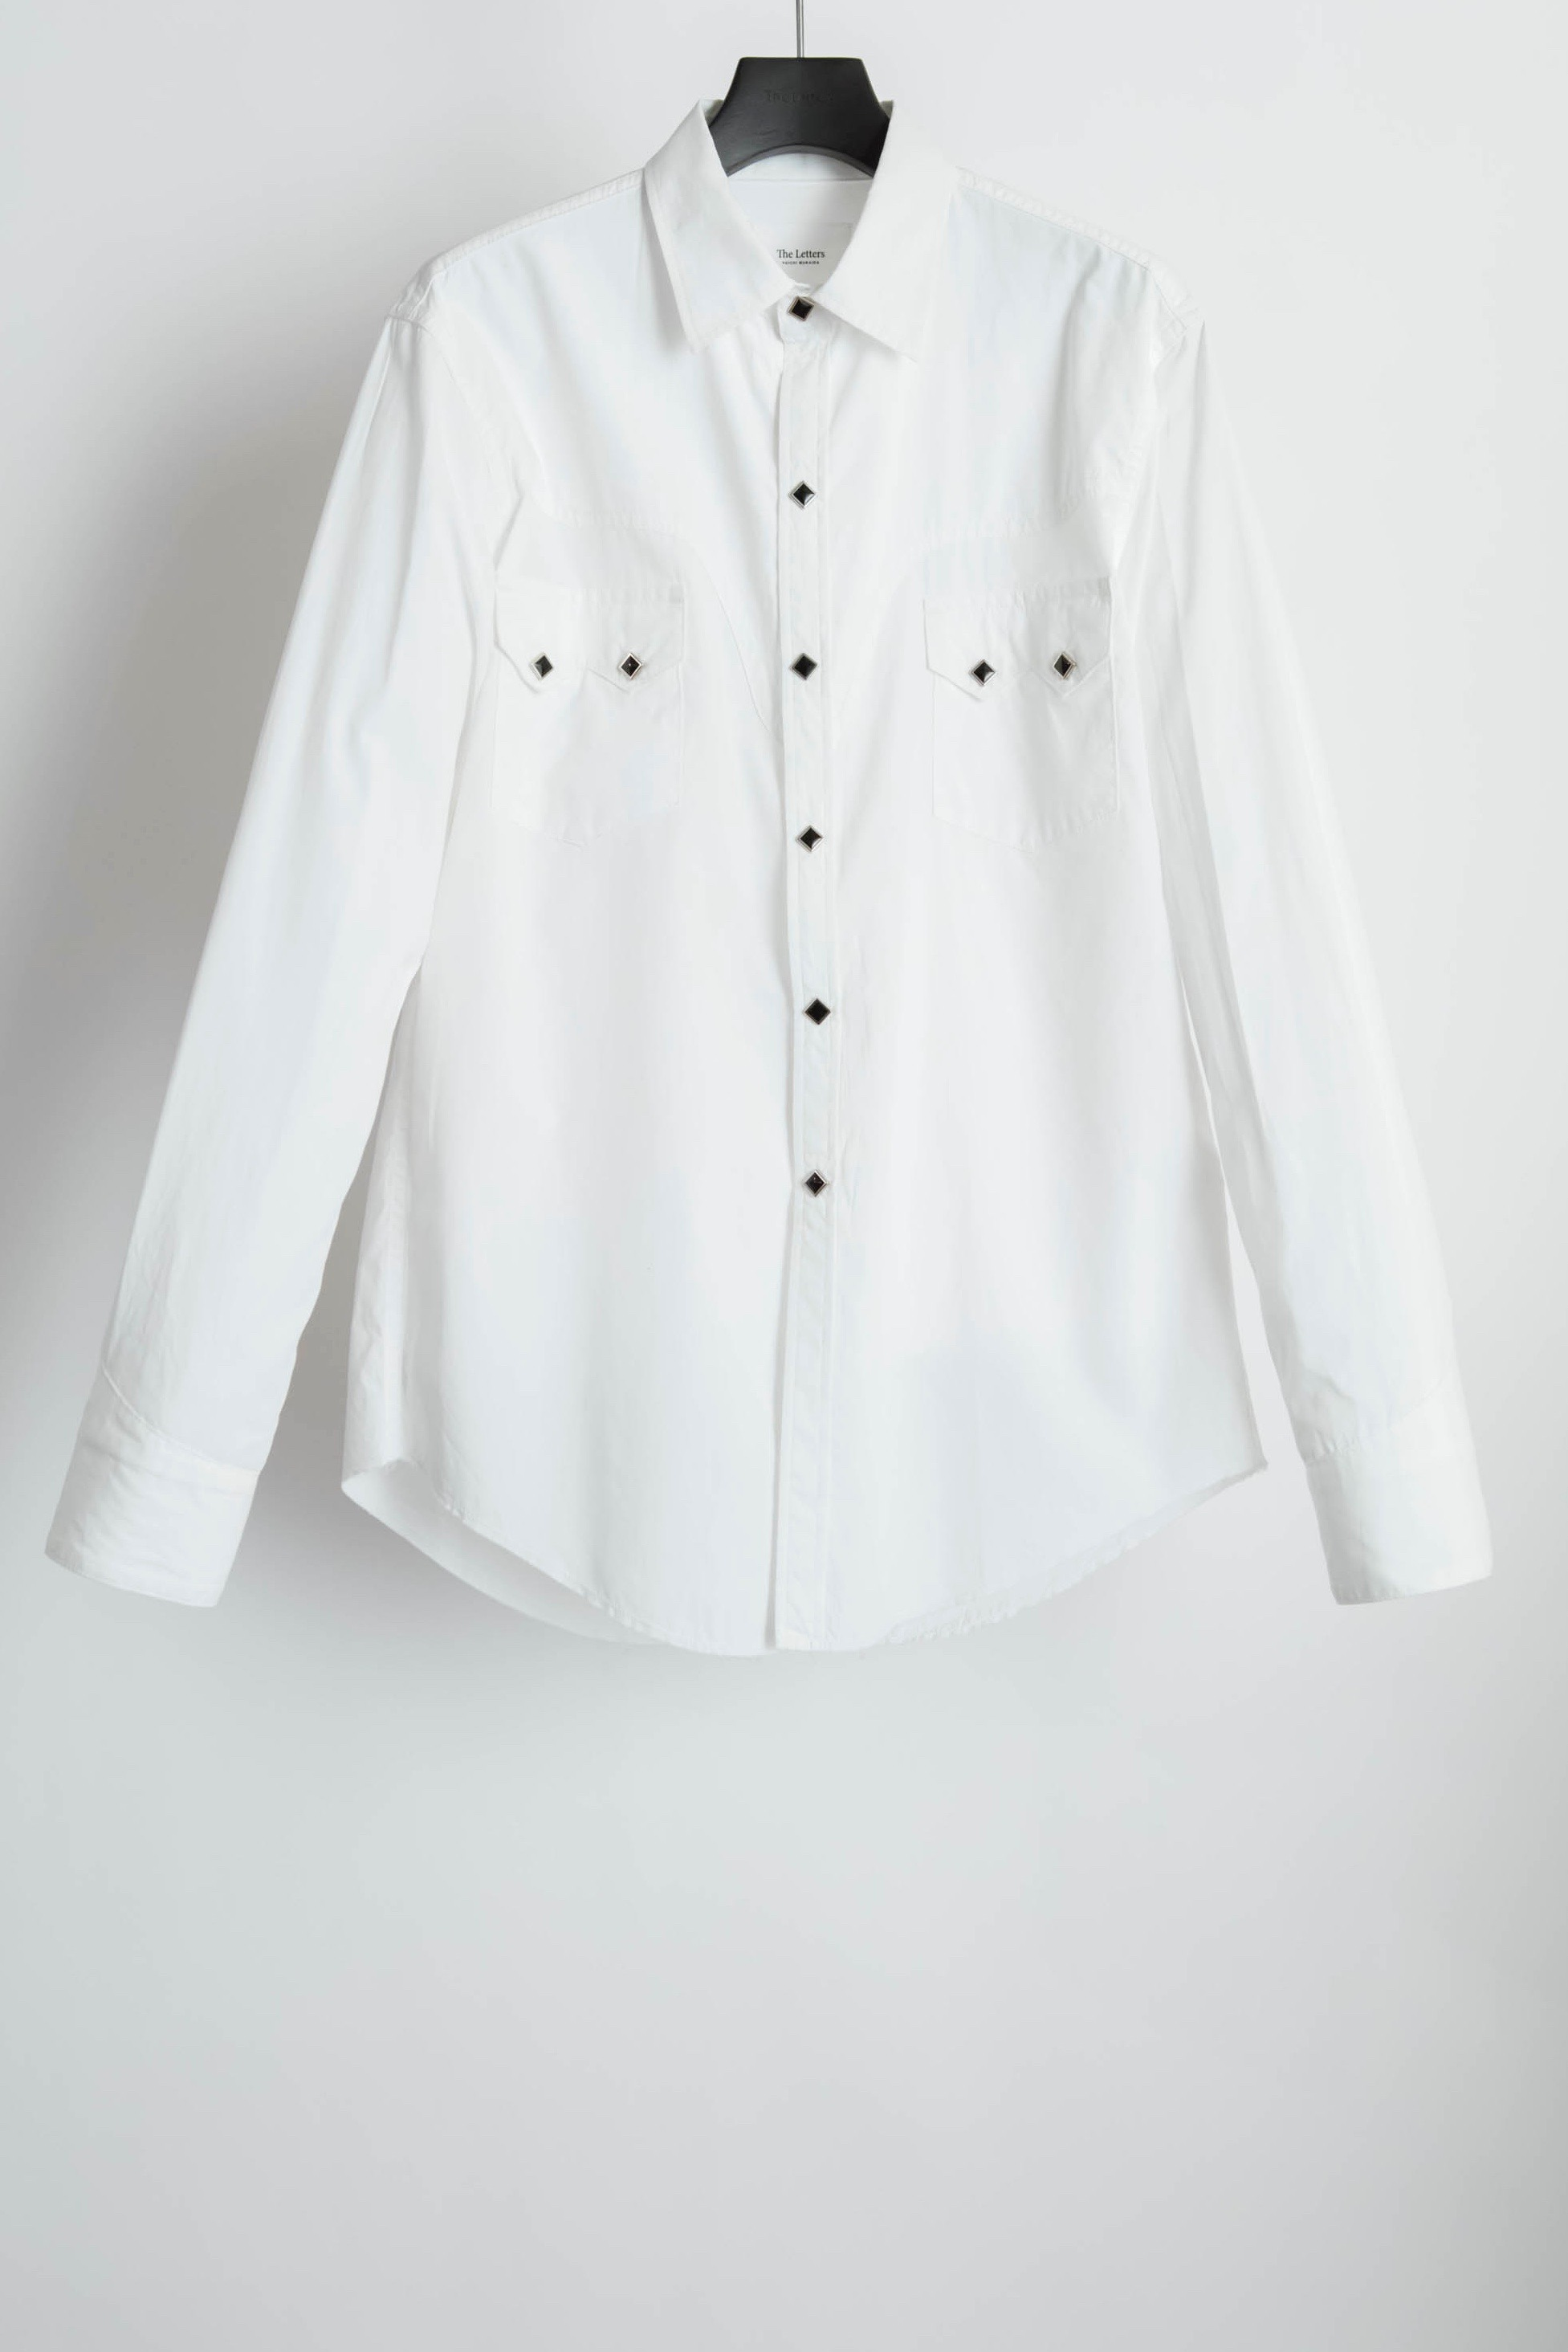 【The Letters】Western Harry Shirt. -Broad Cloth-